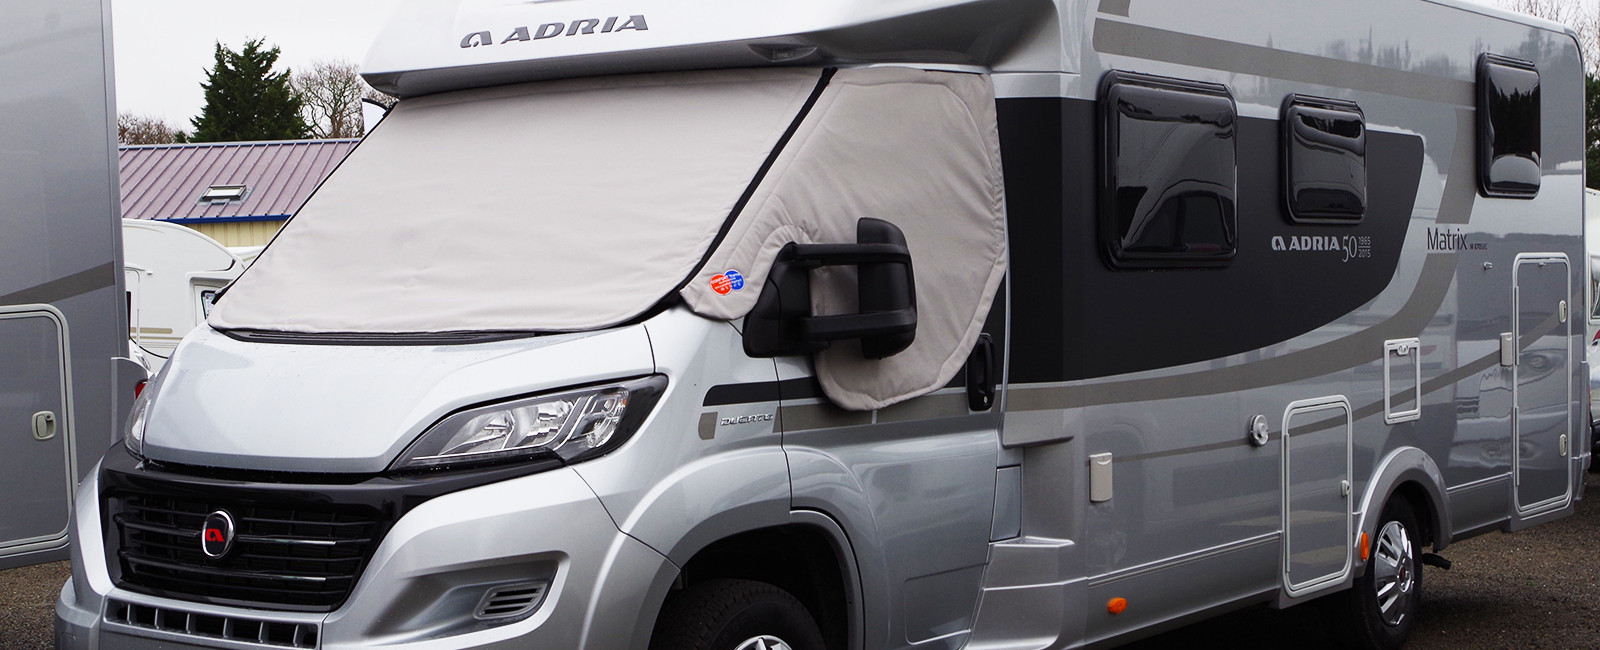 Rideau isolant camping car